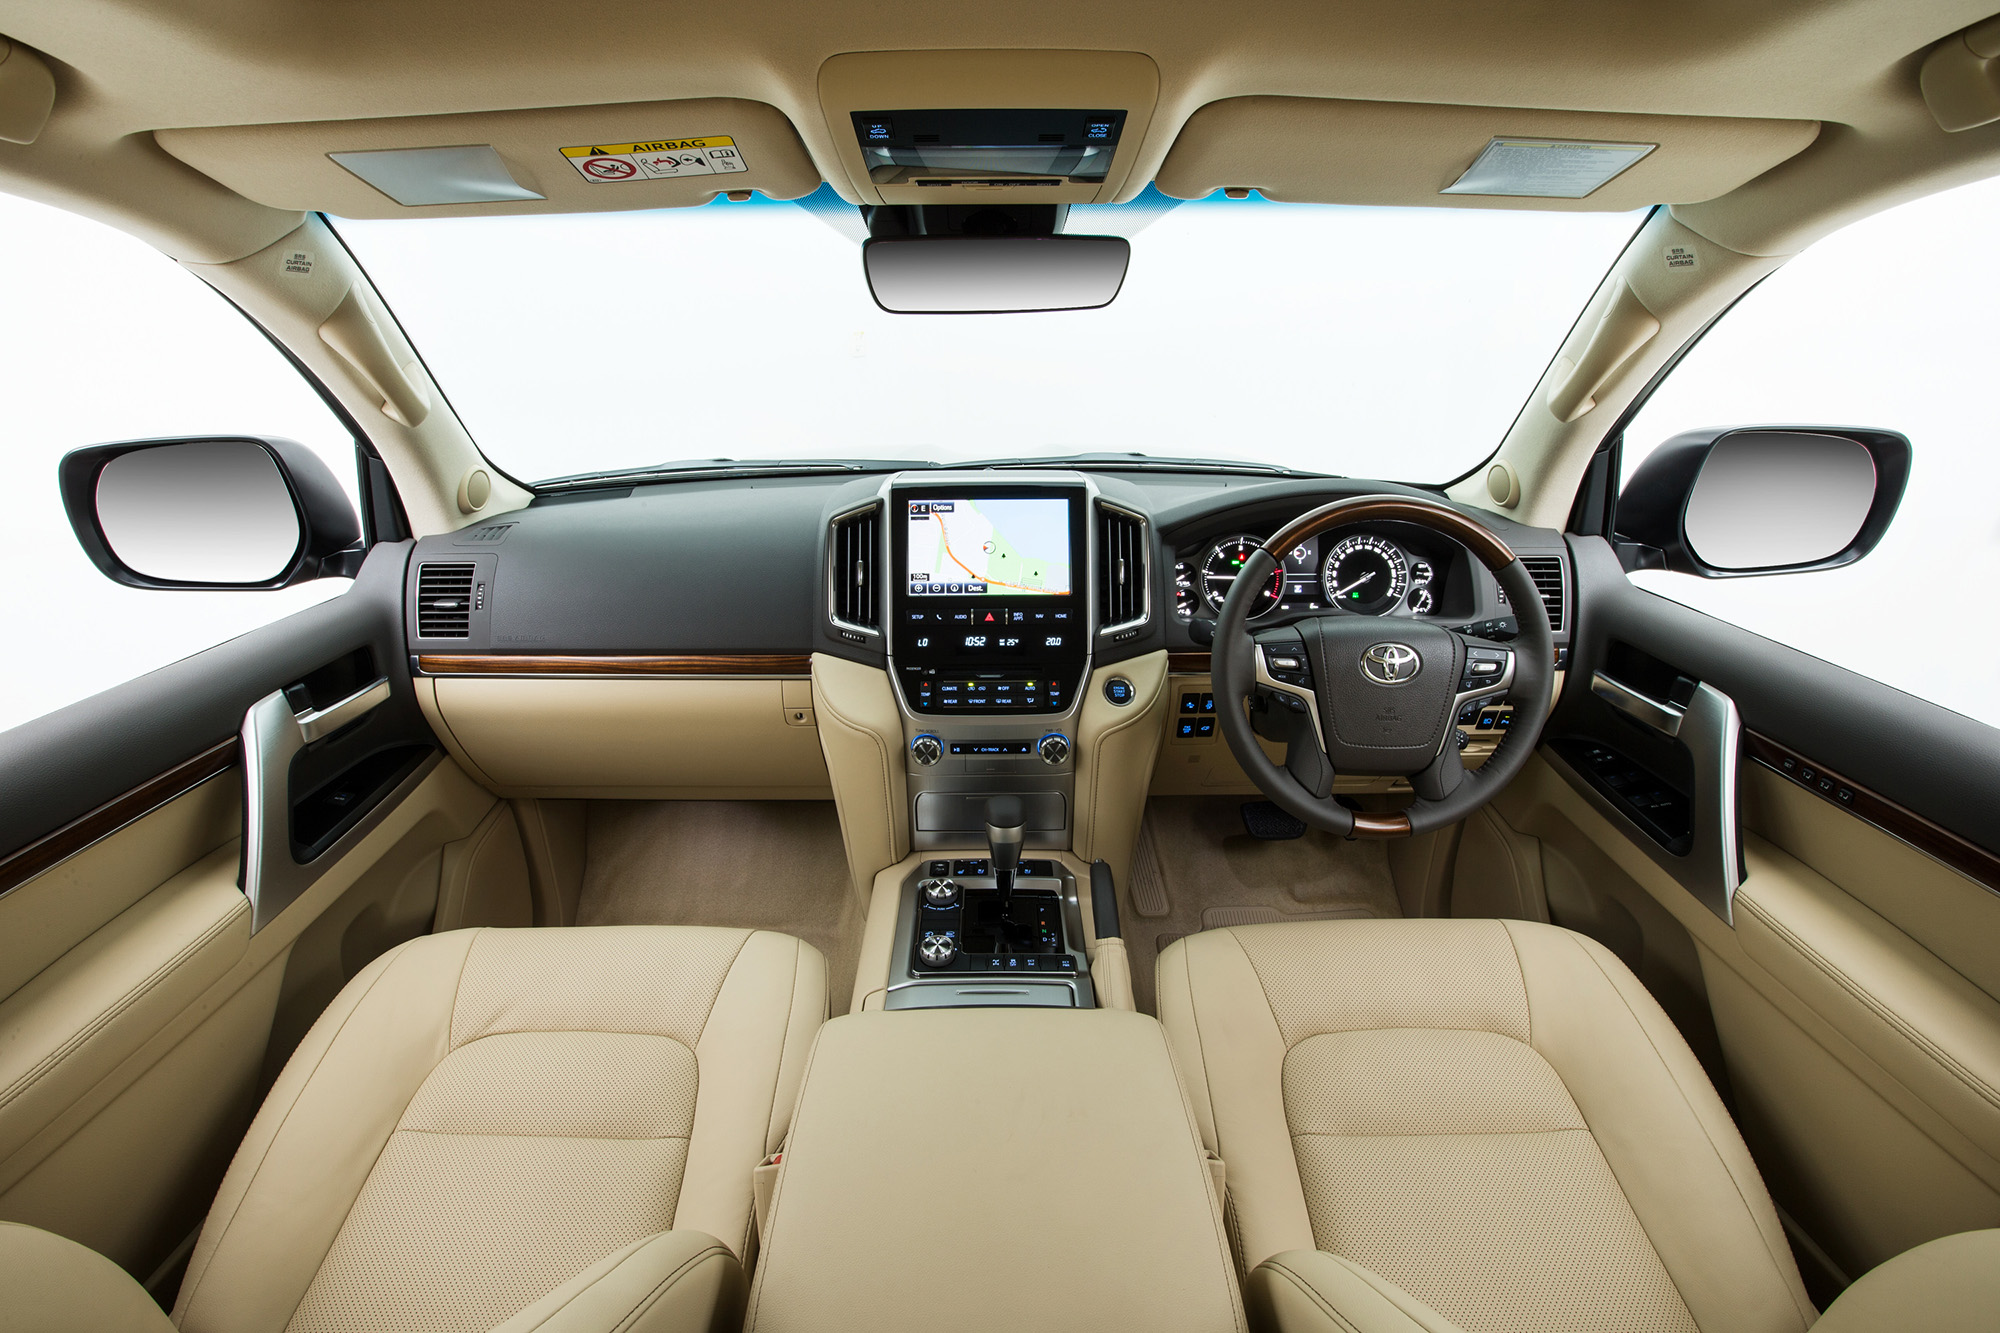 2016 Toyota LandCruiser 200 Series pricing and ...